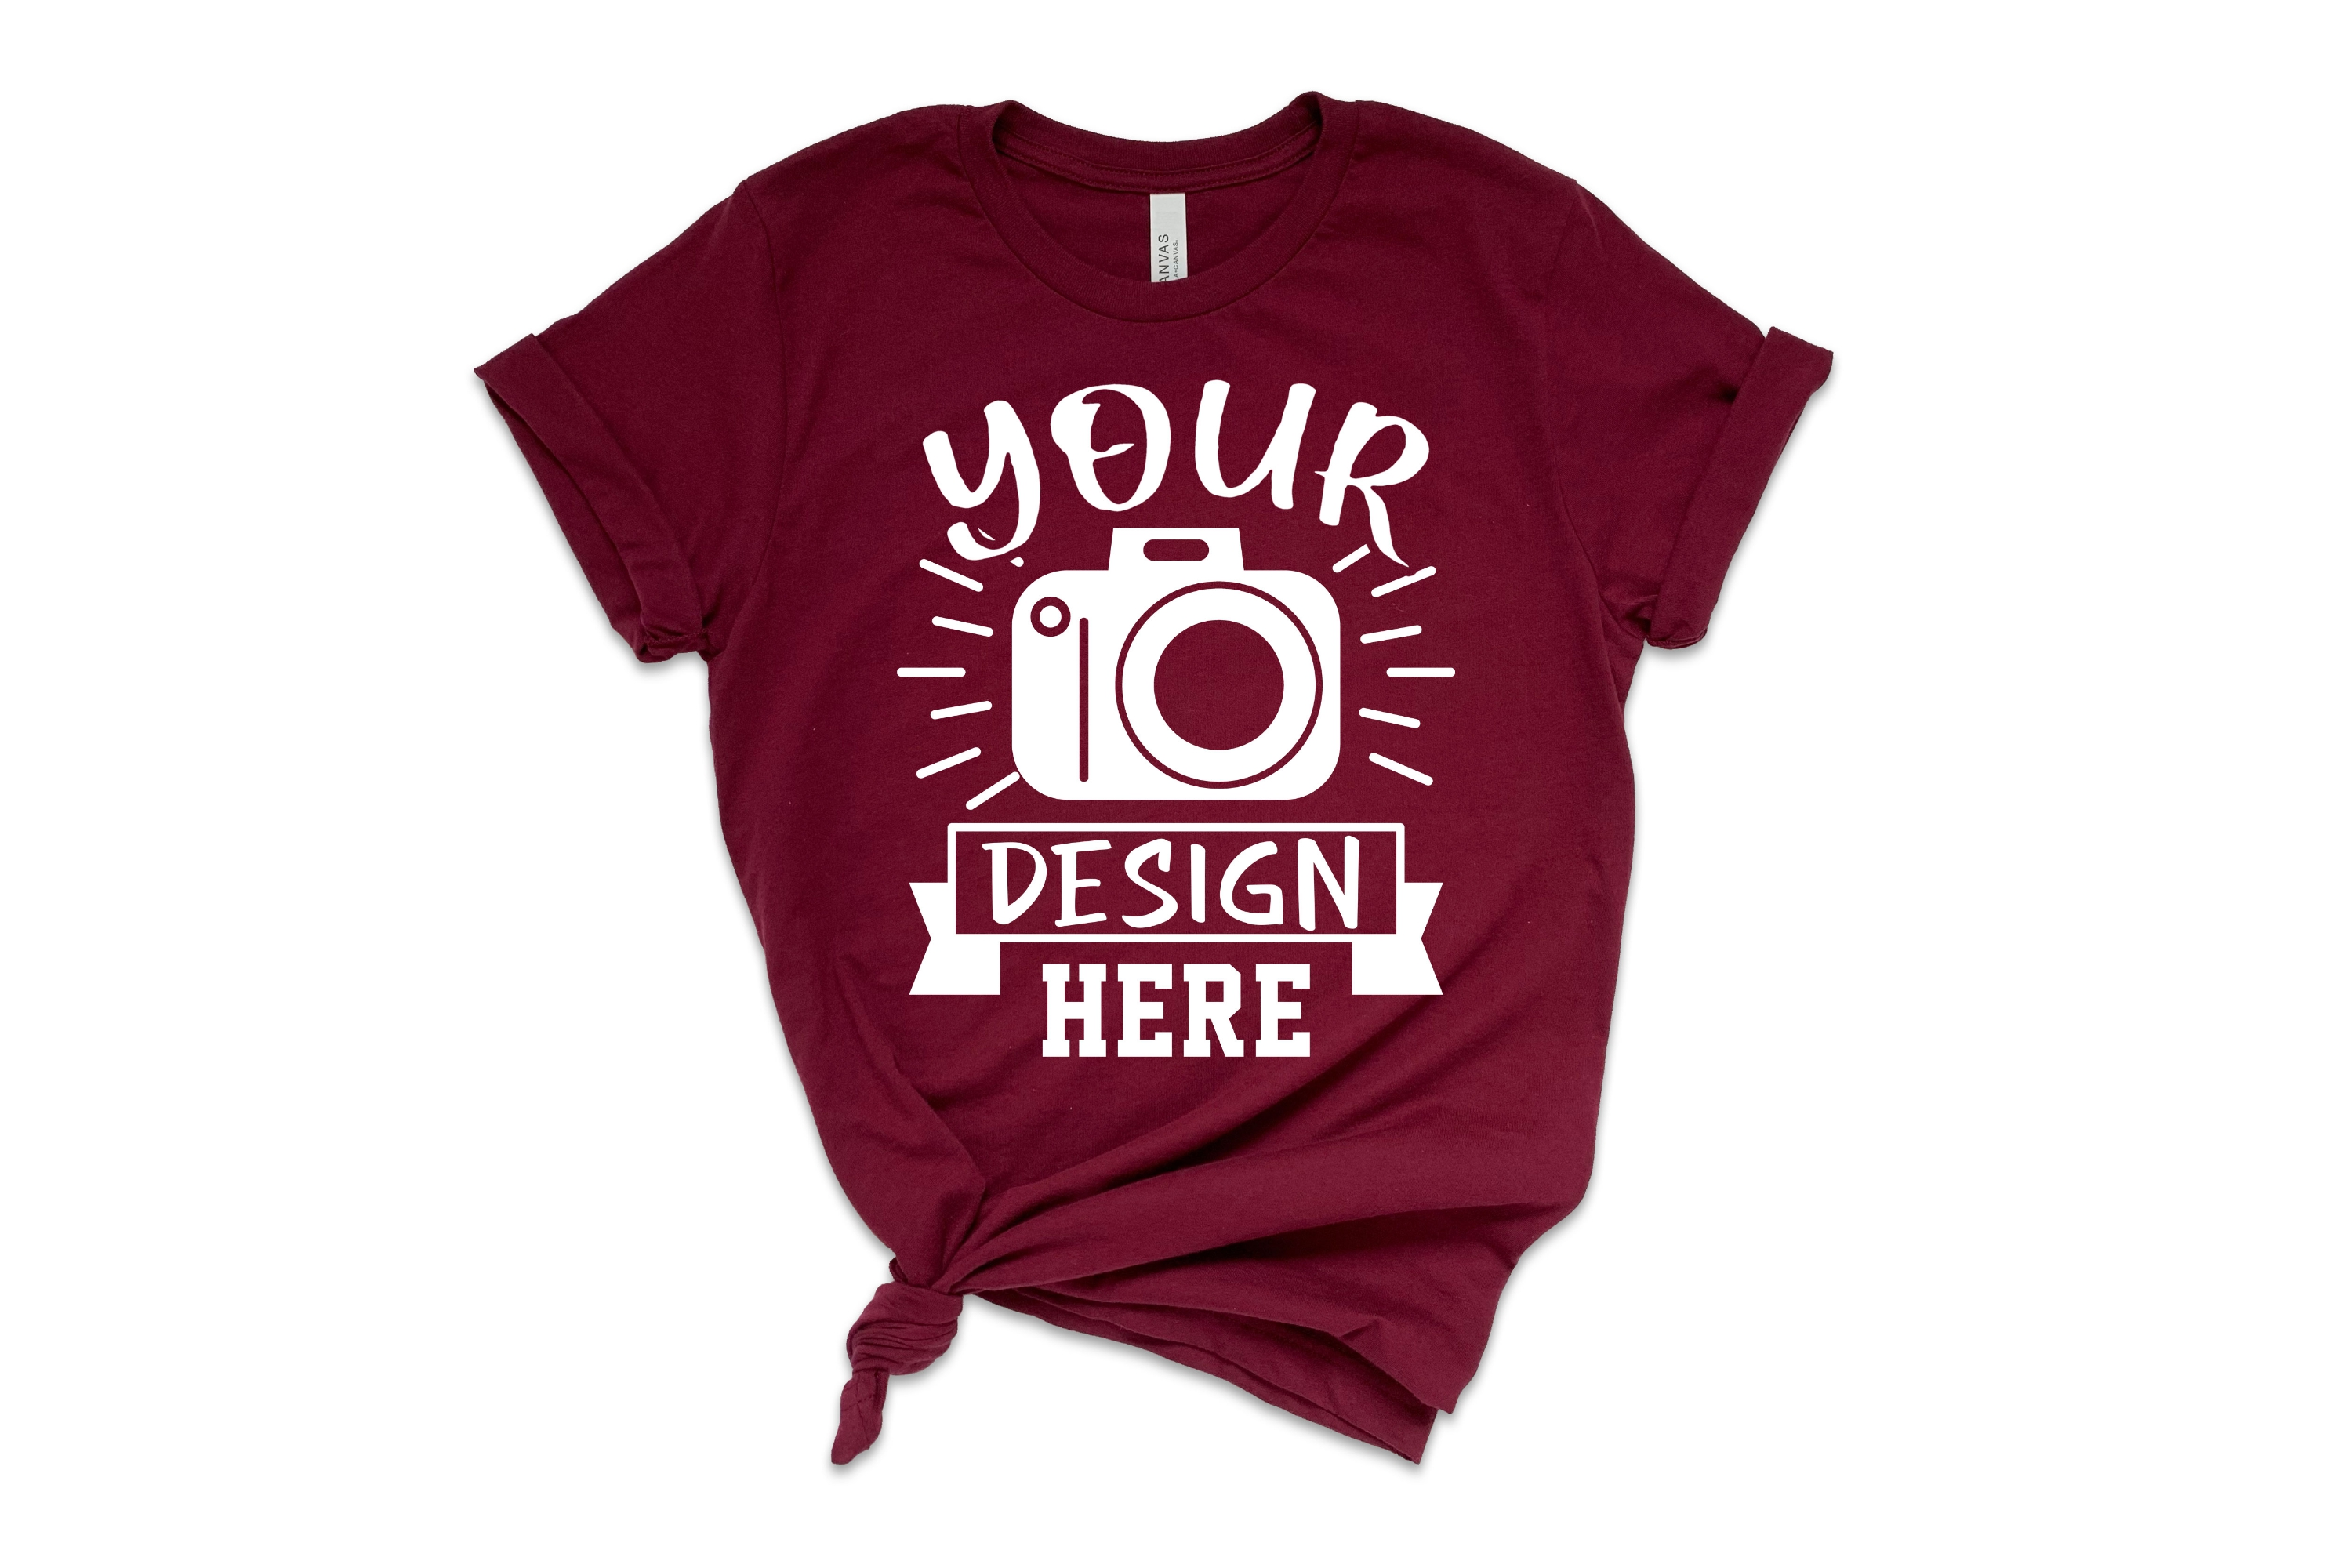 Bella Canvas 3001 Mockup, flat lay Maroon t-shirt mockup example image 1